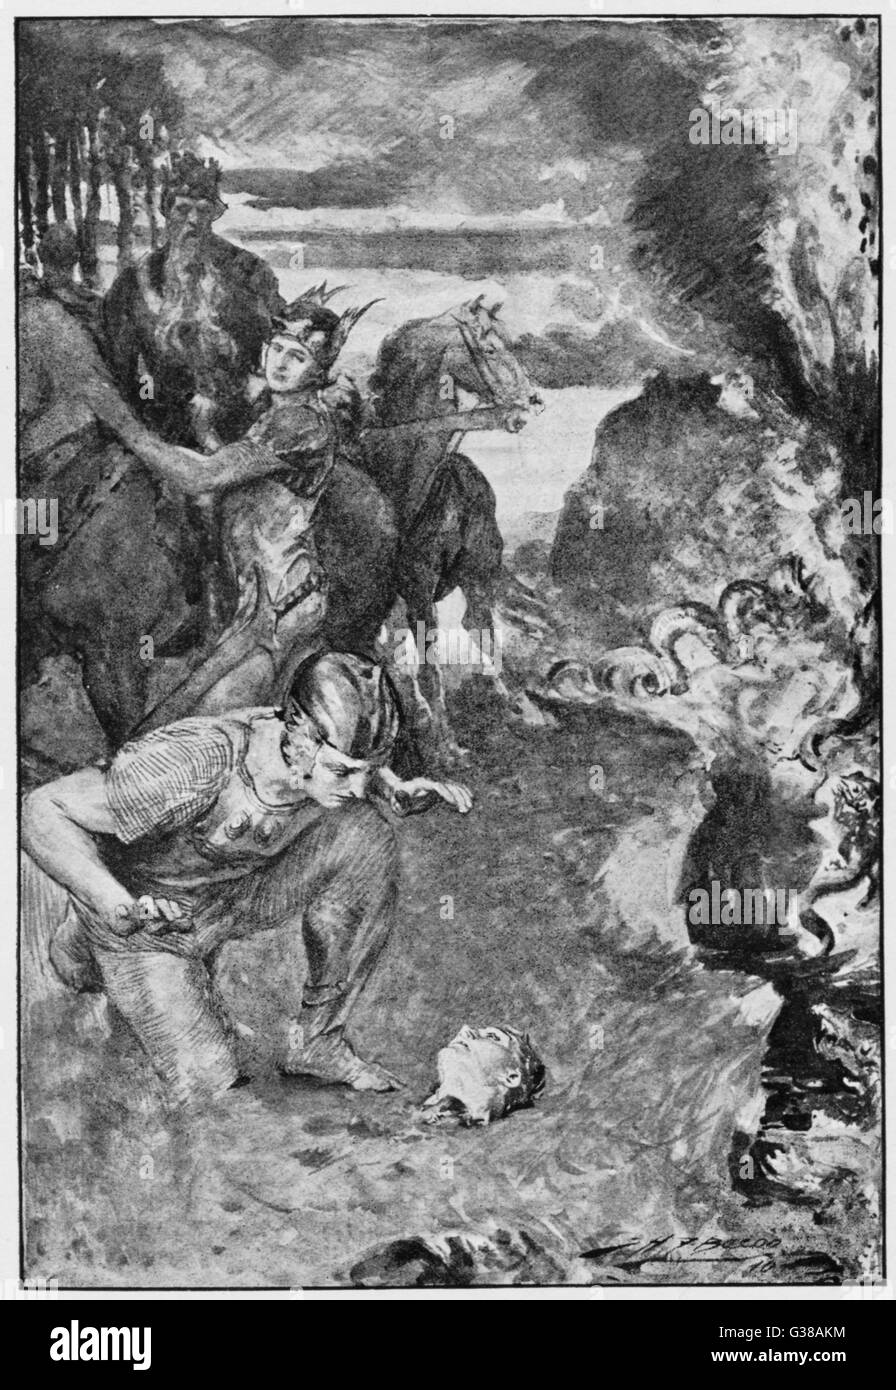 Beowulf finds the severed head  of his comrade Aschere (a  victim of Grendel the  monster). - Stock Image